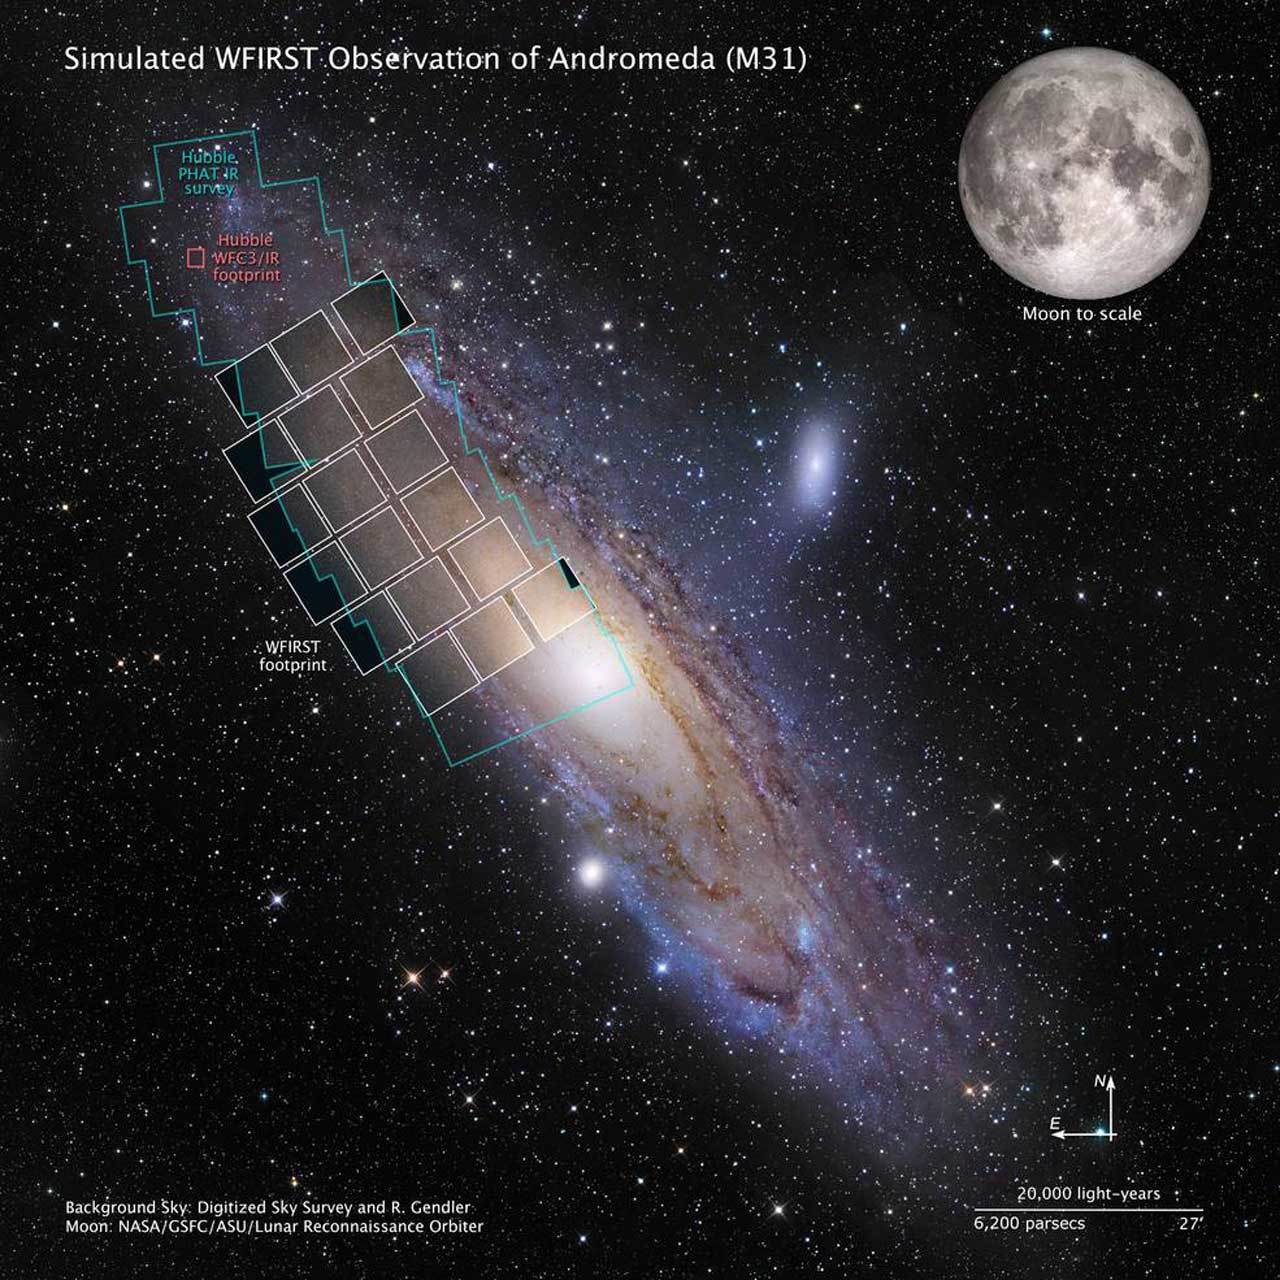 Simulated WFIRST Observation of Andromeda (M31) shows the Moon to scale near the M31 galaxy shows the field of view for the new space telescope. The field of view footprint is vastly larger than Hubble's and covers about half the size of the galaxy.